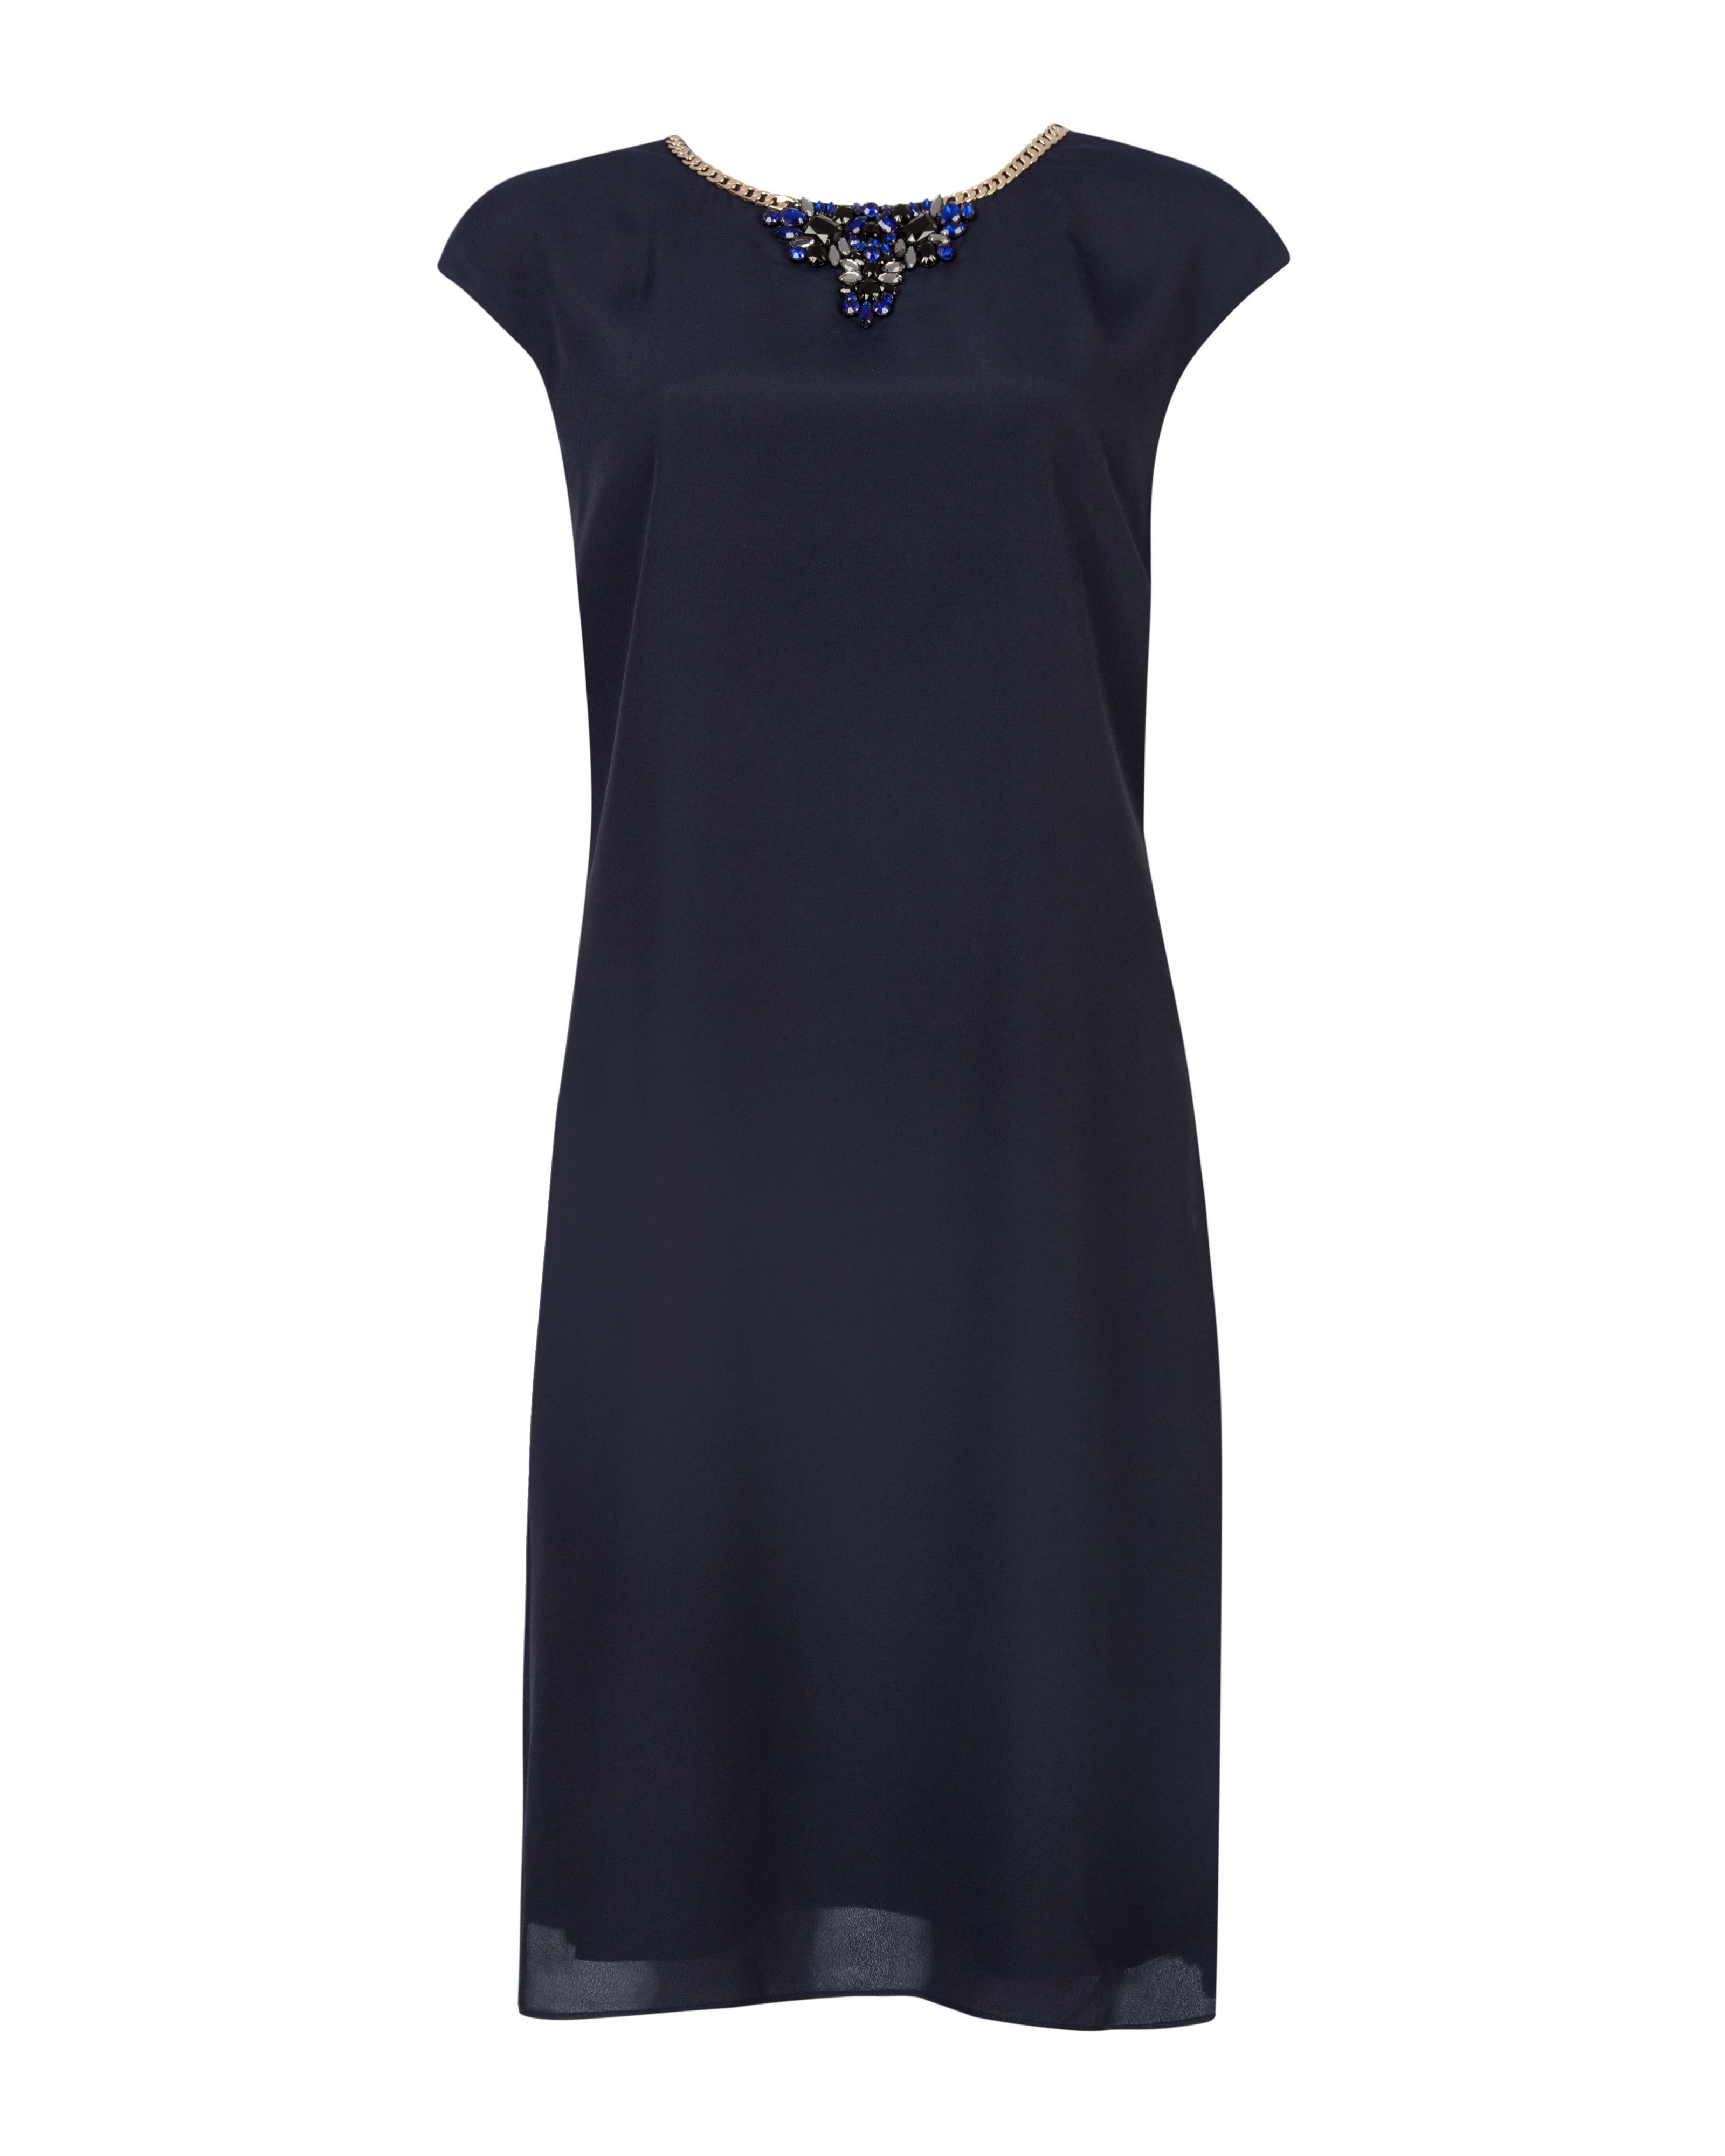 Kimmiye embellished tunic dress